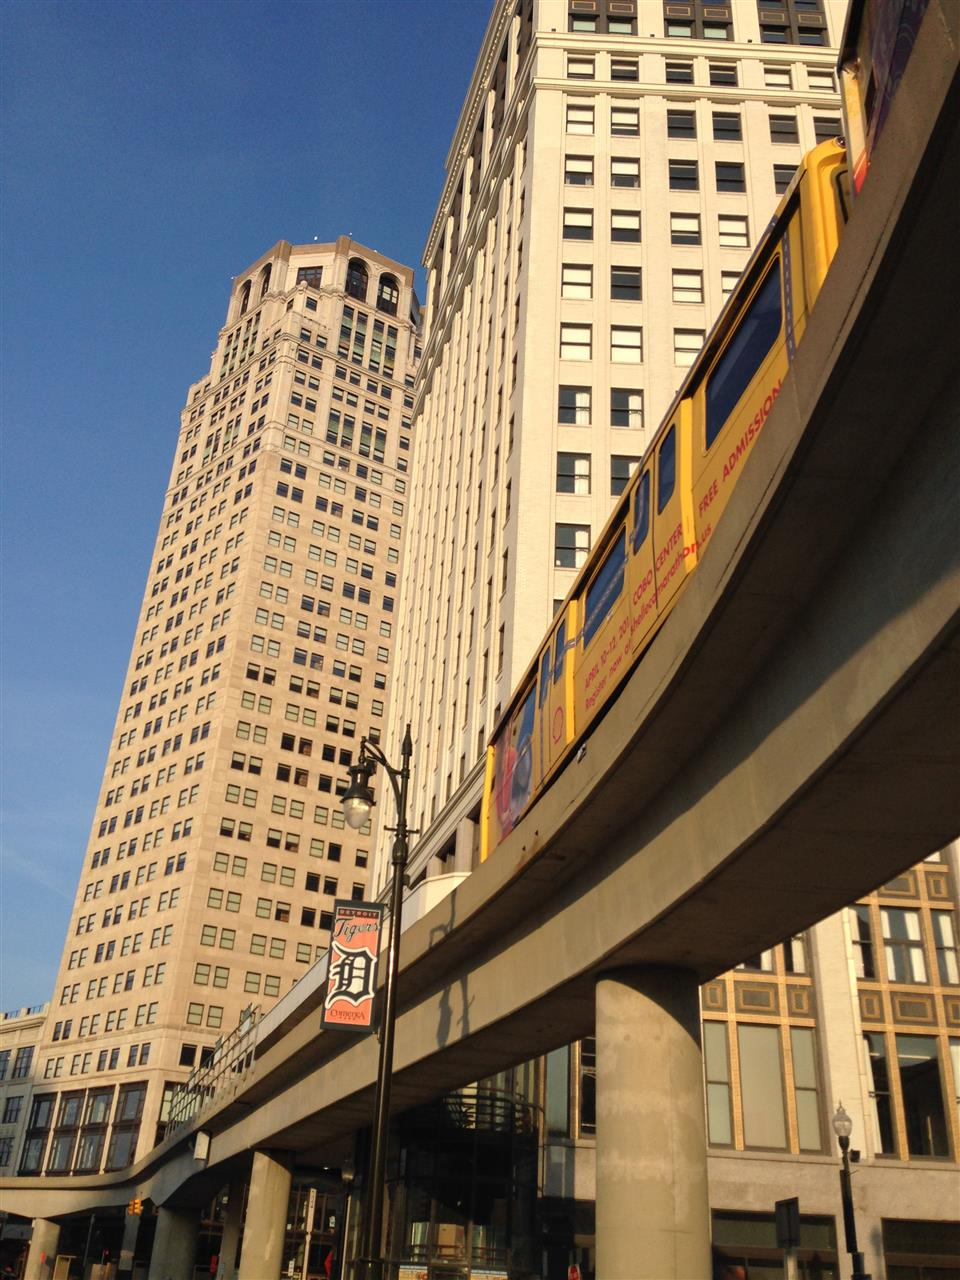 The People Mover in action. The People Mover is an automated guideway transportation system that circulates around downtown Detroit. ~ Detroit, Michigan #LeadingRElocal #Detroit #Michigan